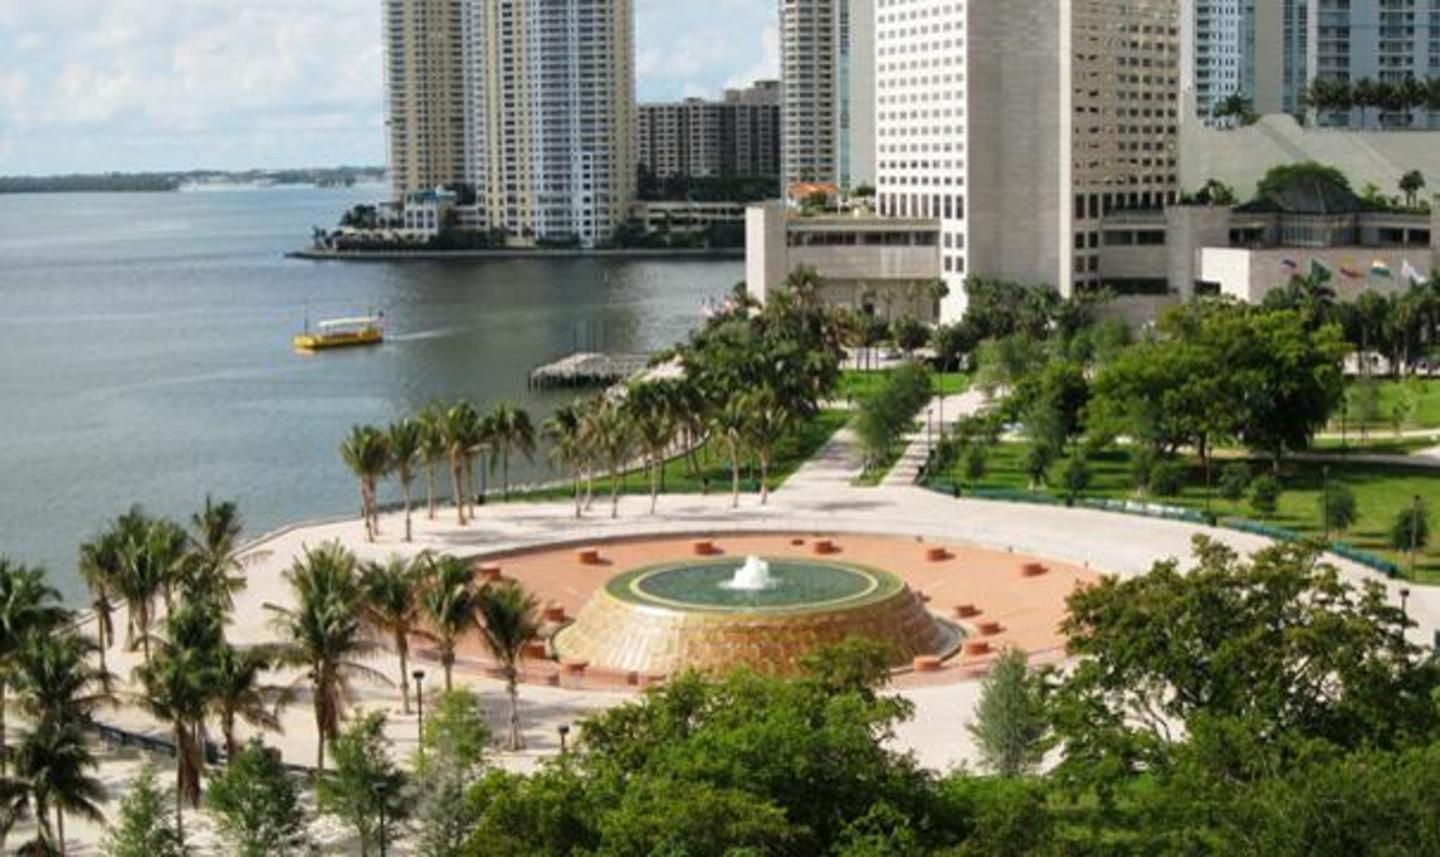 The Mildred & Claude Pepper Fountain at Bayfront Park